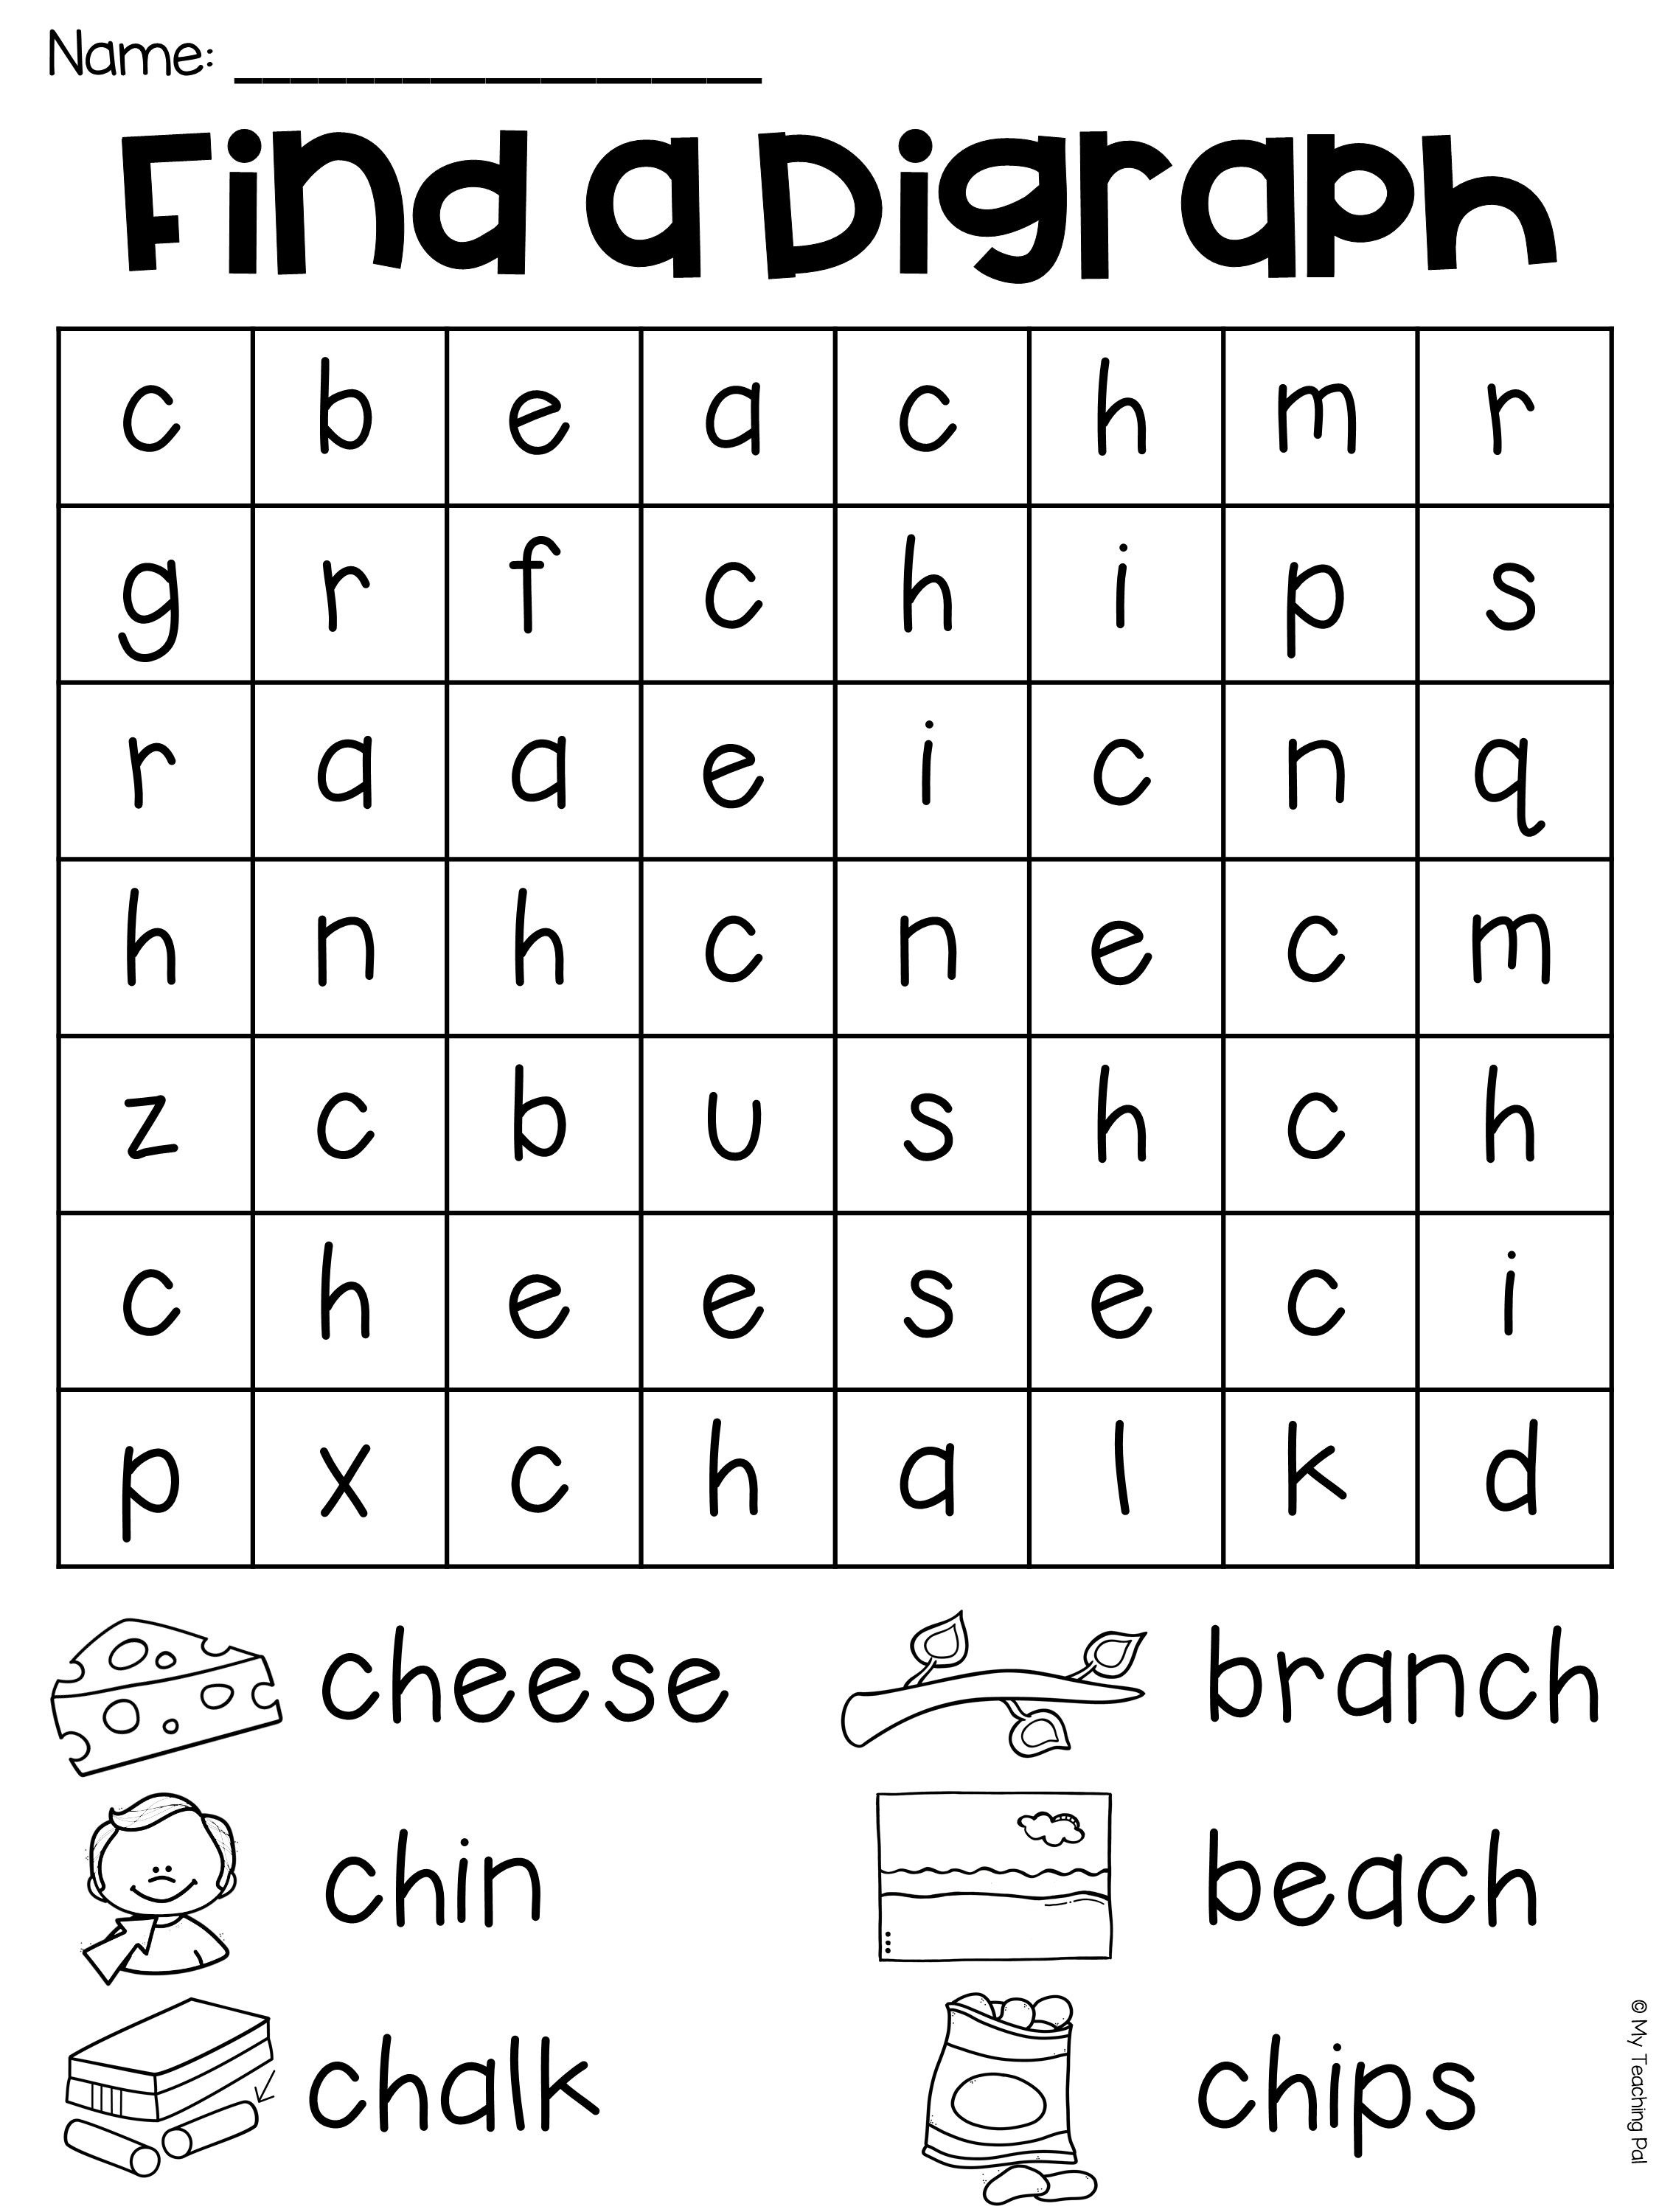 Ch Worksheet Packet - Digraphs Worksheets | My Tpt Store | Digraphs - Free Printable Ch Digraph Worksheets